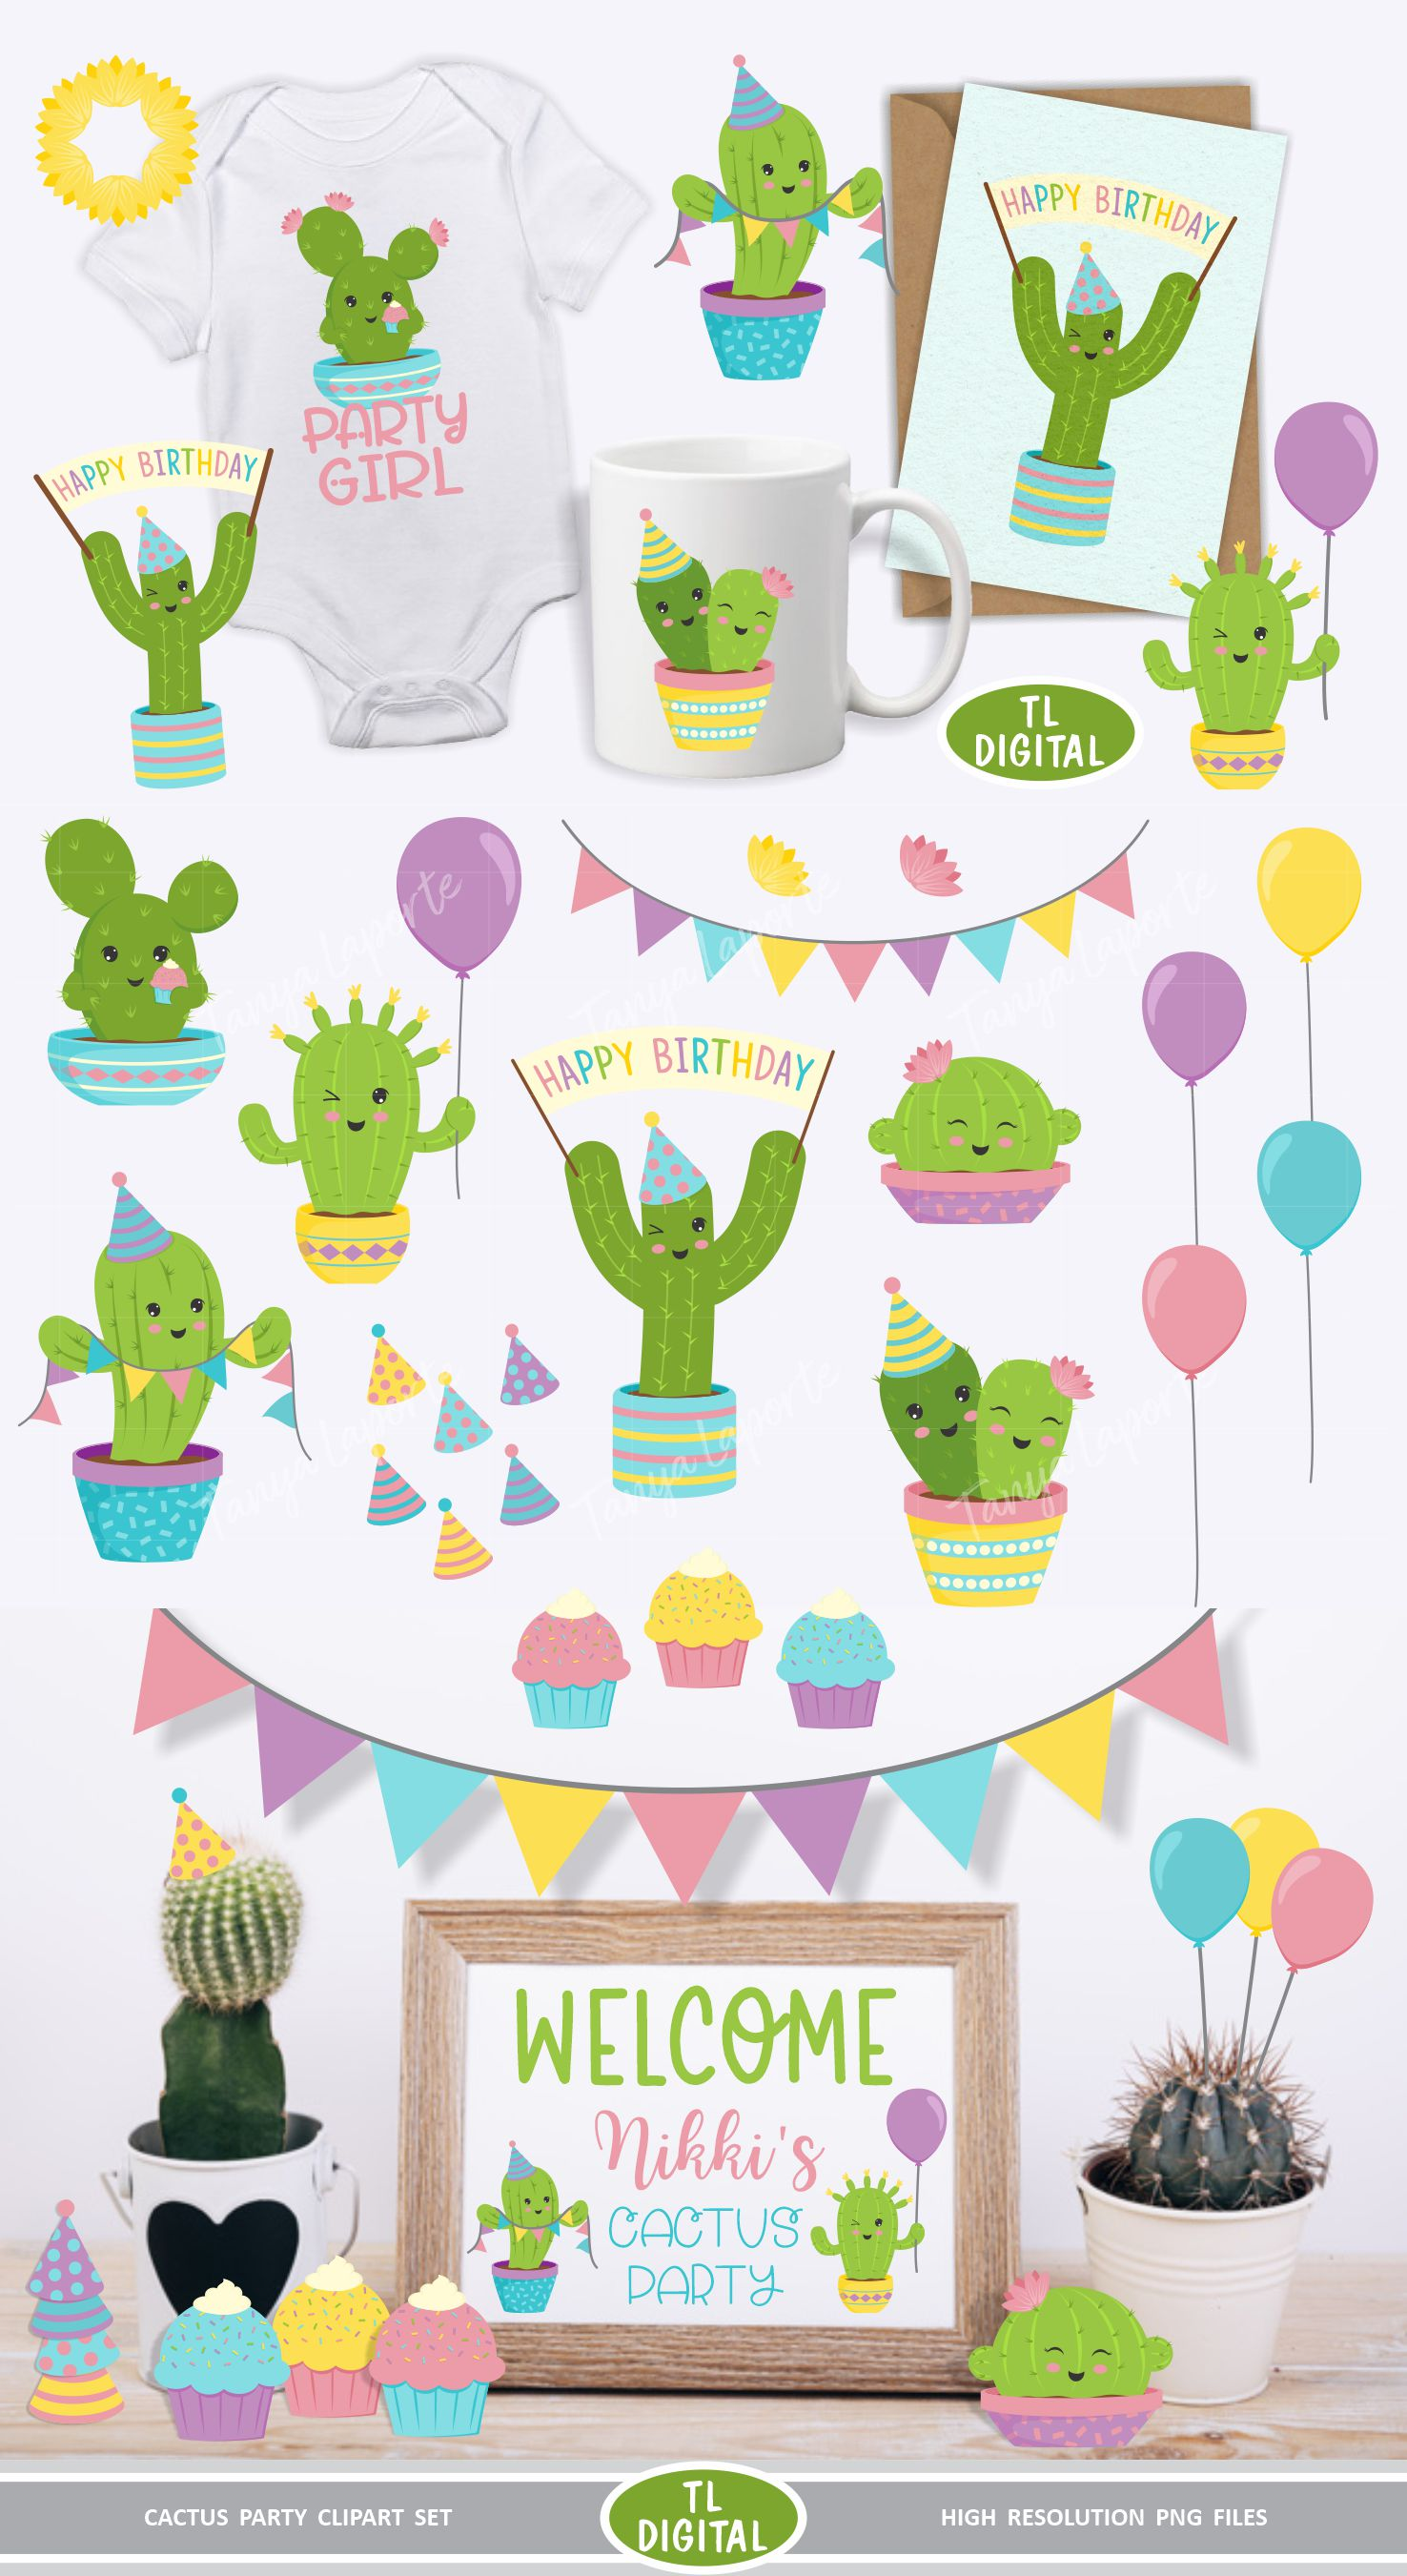 Cactus Party Clipart Set - 22 Birthday Graphics - PNG Files example image 2